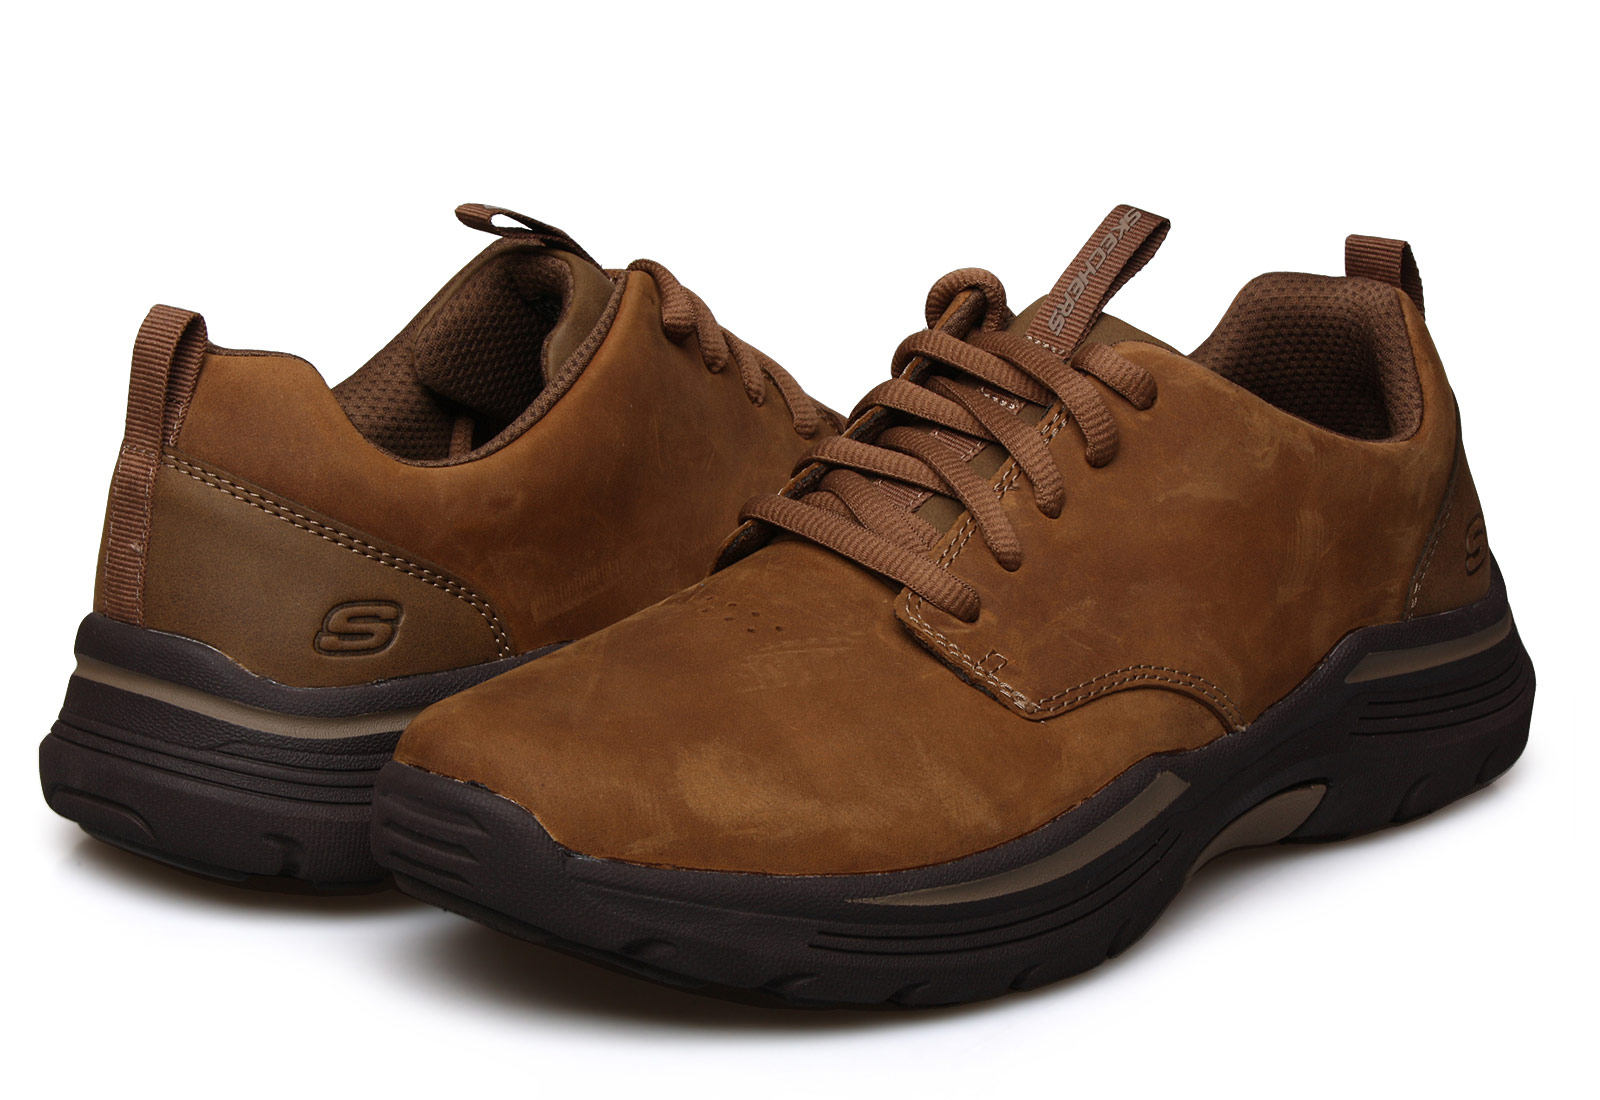 Skechers Cipele Expended Carvalo